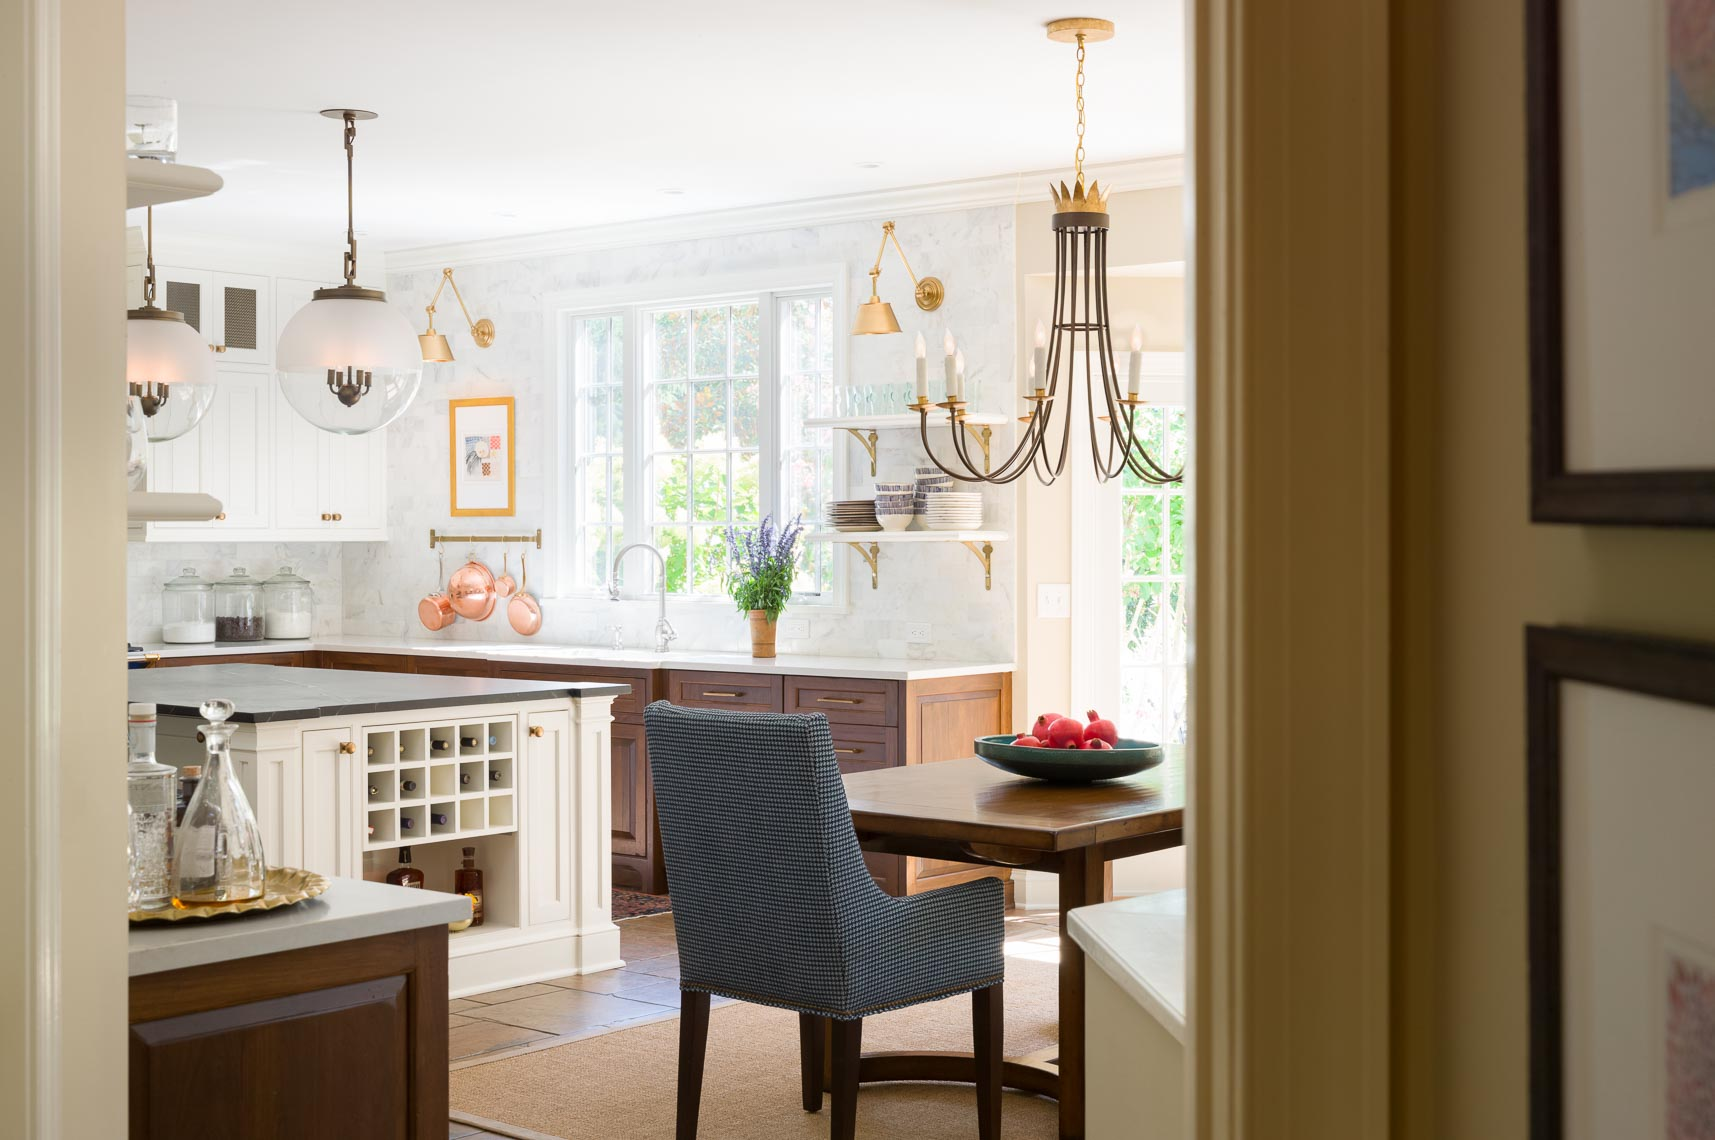 Princeton Nj Kitchen Interior Design